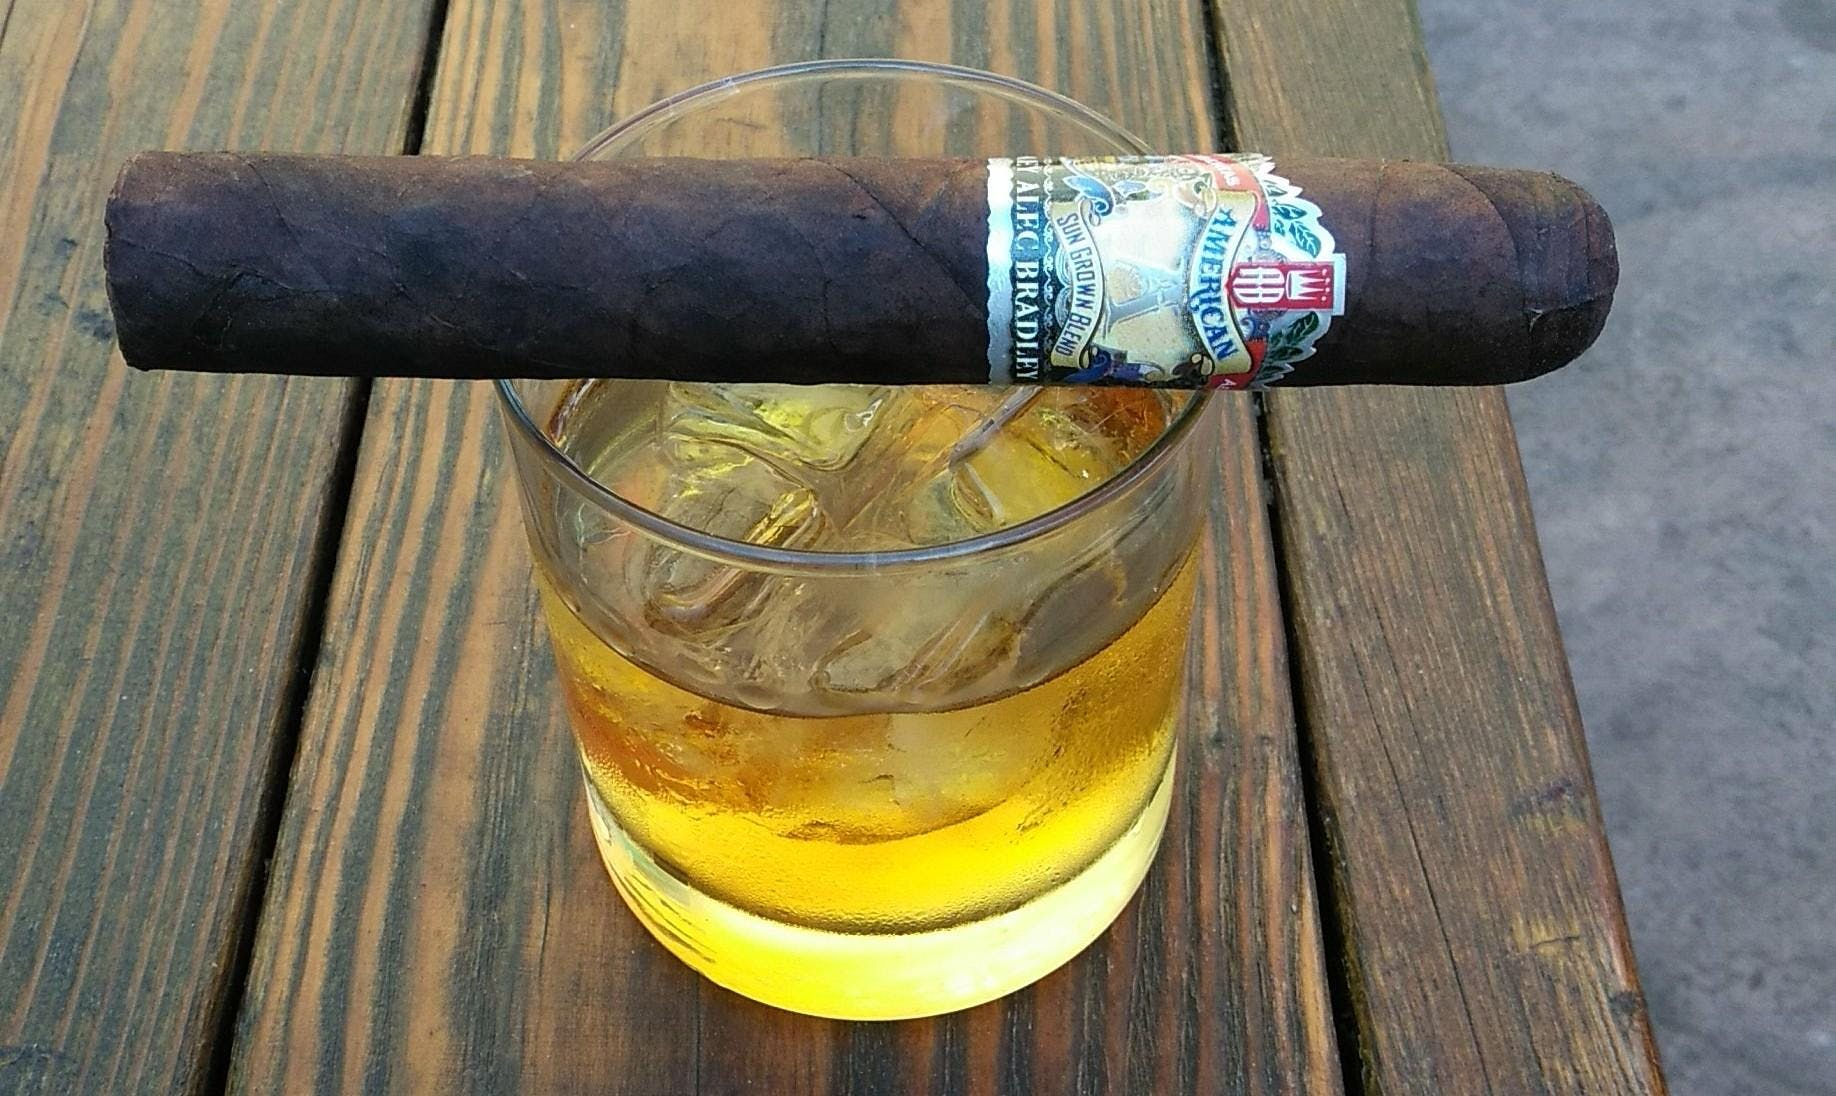 2nd wednesday cigar nights at Roxanne's